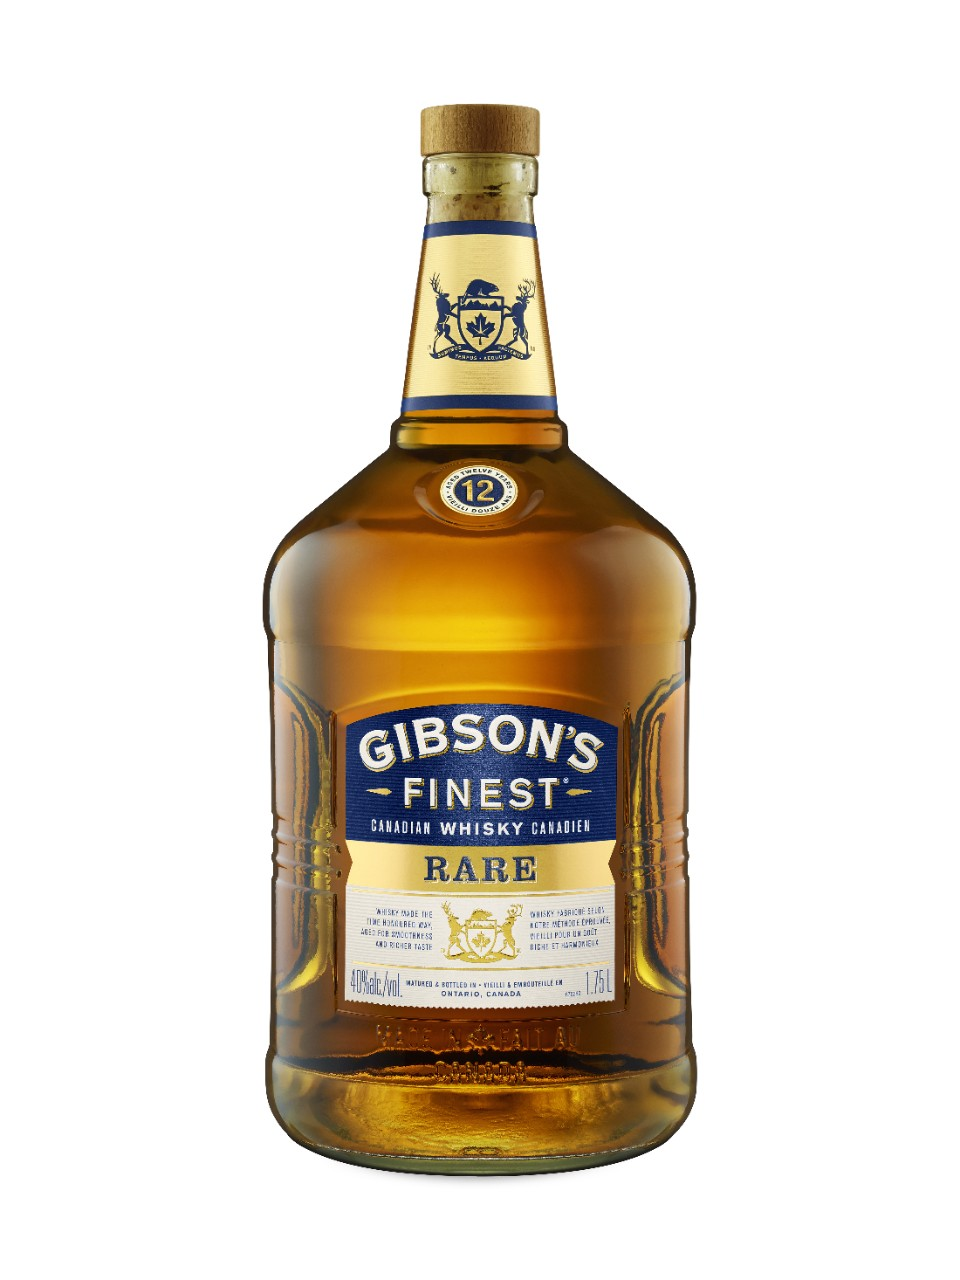 Gibson's Finest Rare 12 Year Old Whisky from LCBO